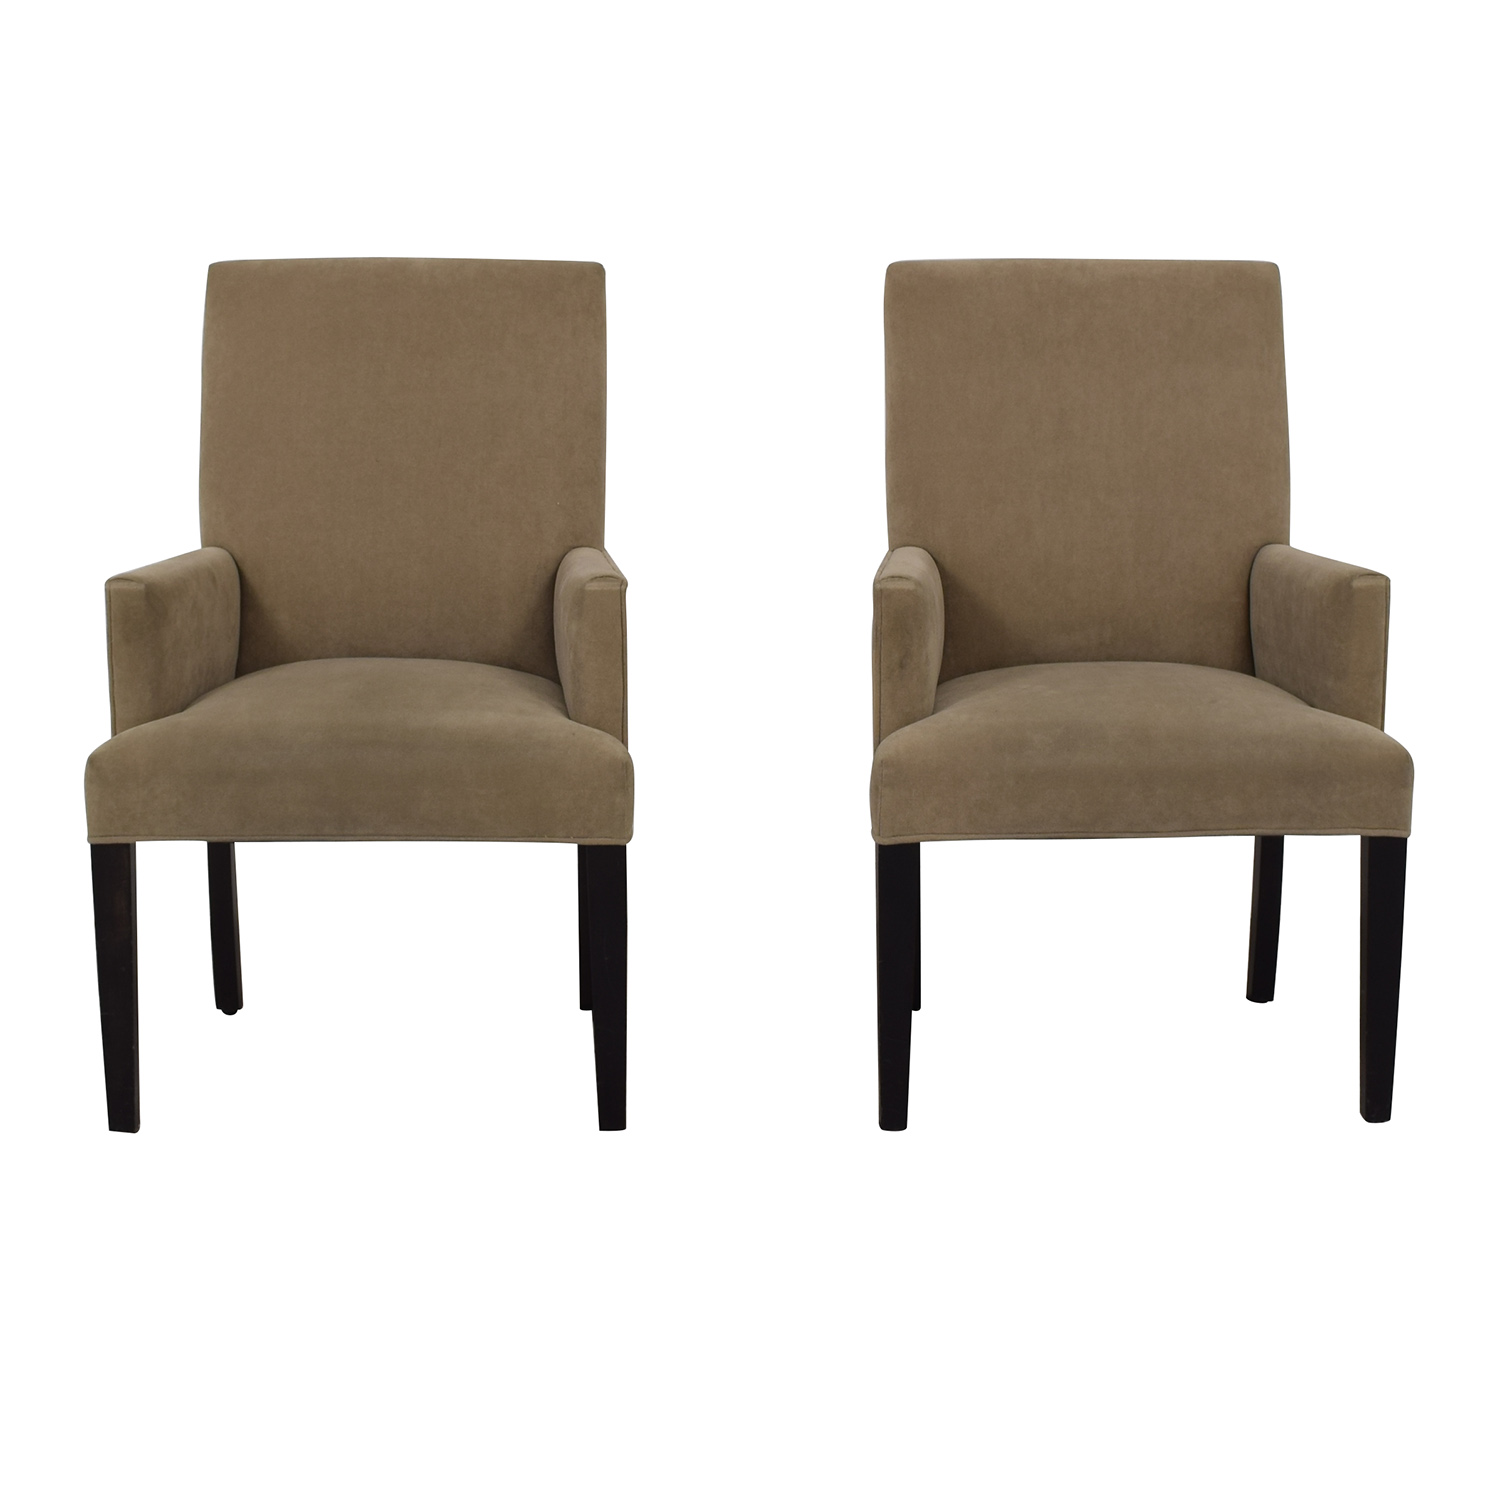 Crate & Barrel Tan Dining Chairs Crate & Barrel